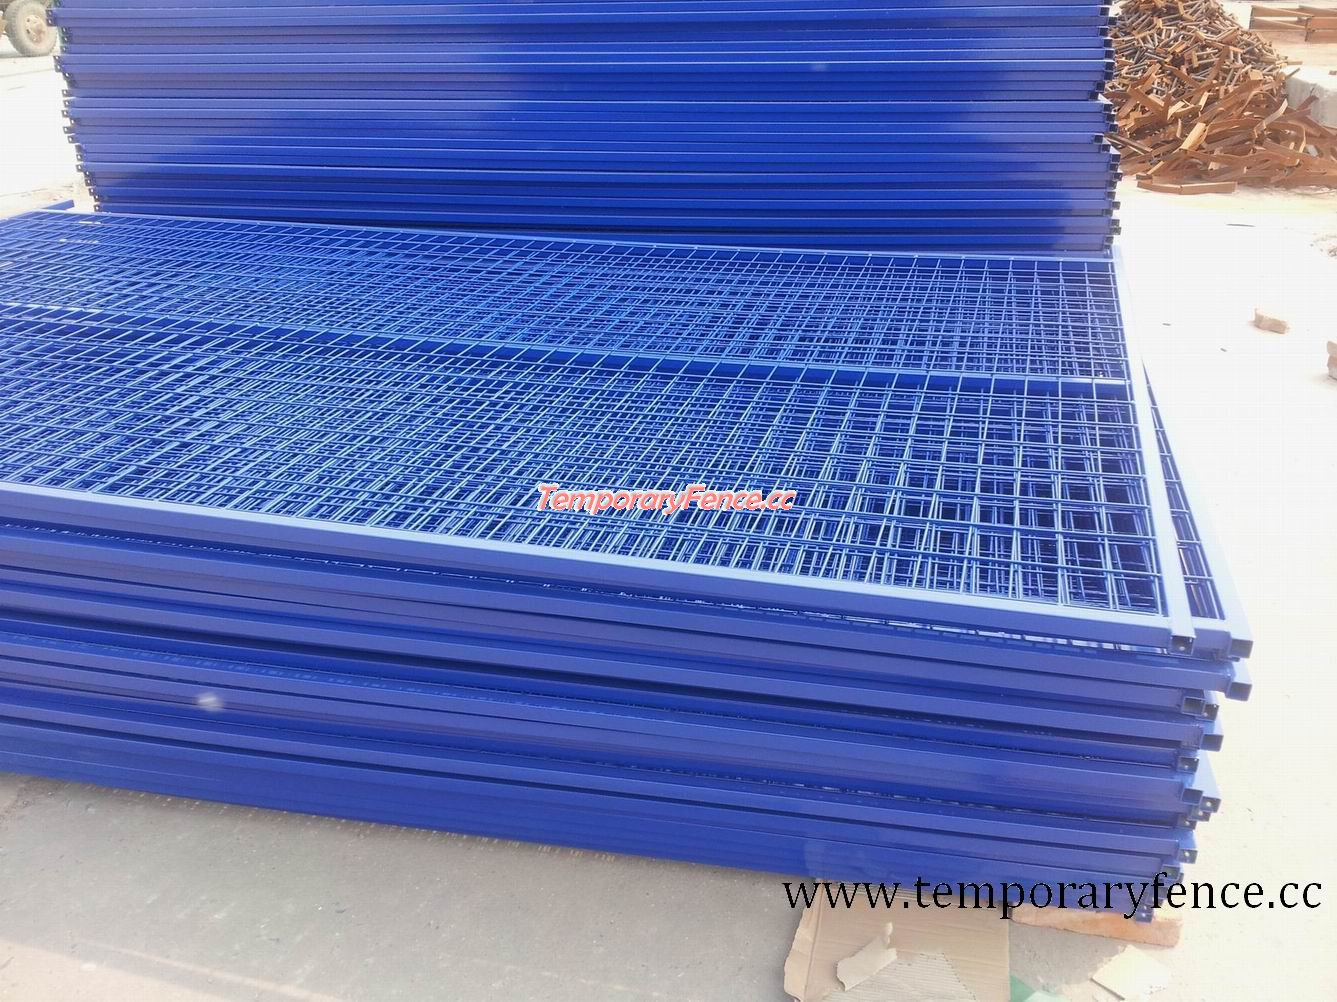 chaoxin temporary fence pvc blue color